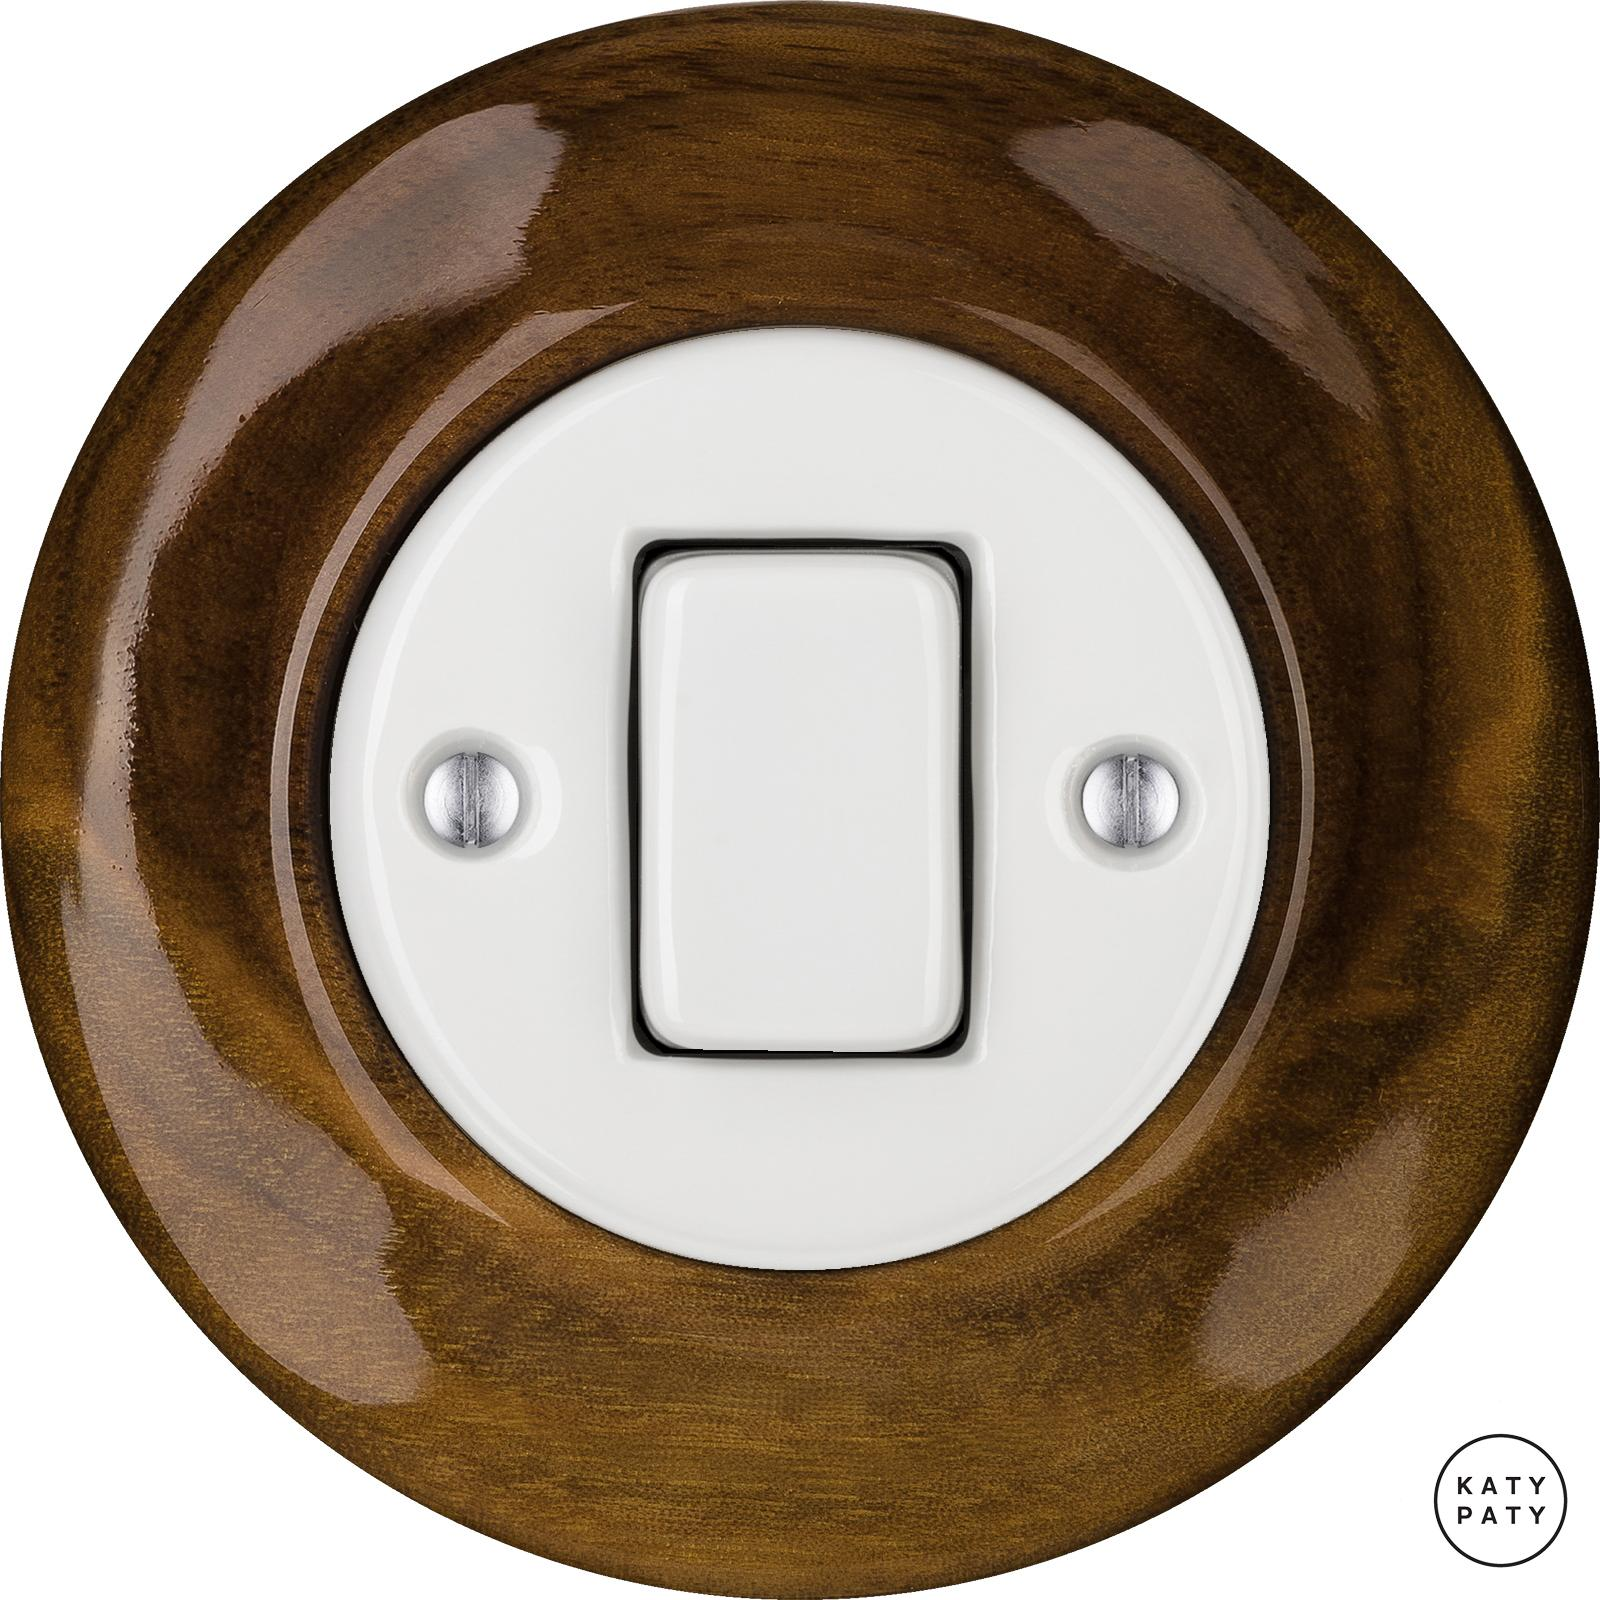 Porcelain switches - 1 gang - FAT ()  - NUC MAG | Katy Paty